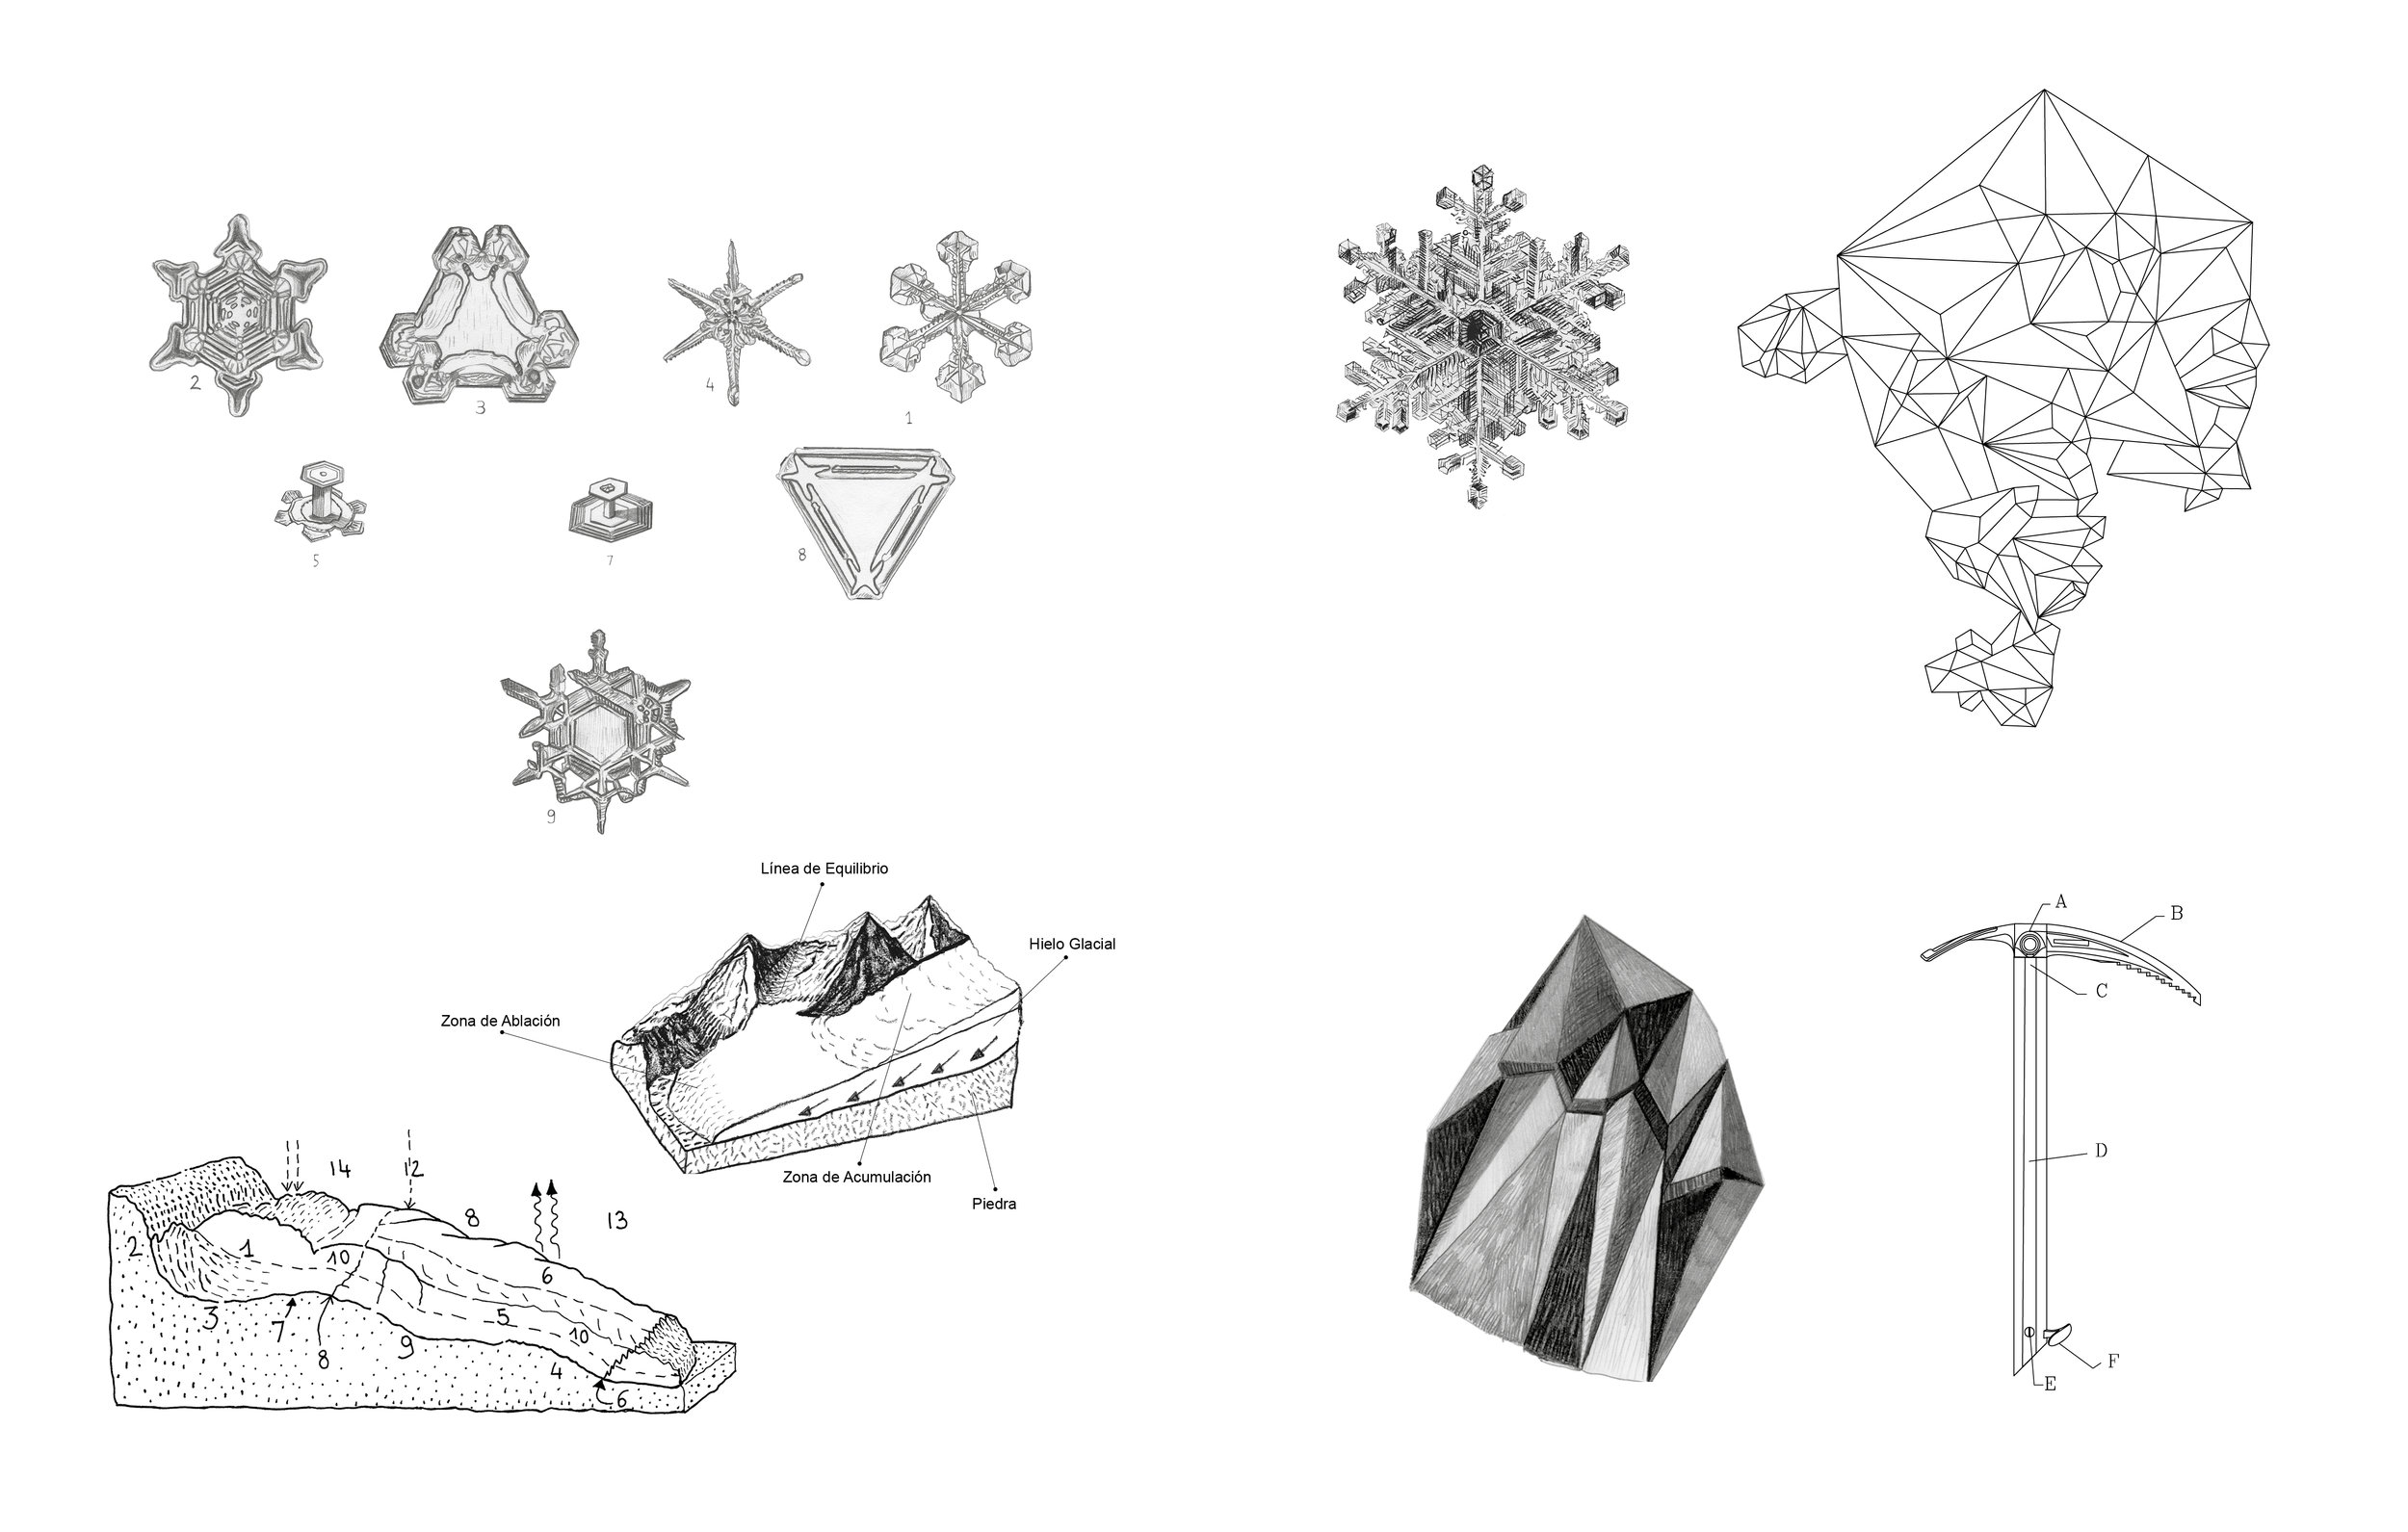 Andrea Galvani © Studies on Climate and Geology for Higgs Ocean_2009.jpg